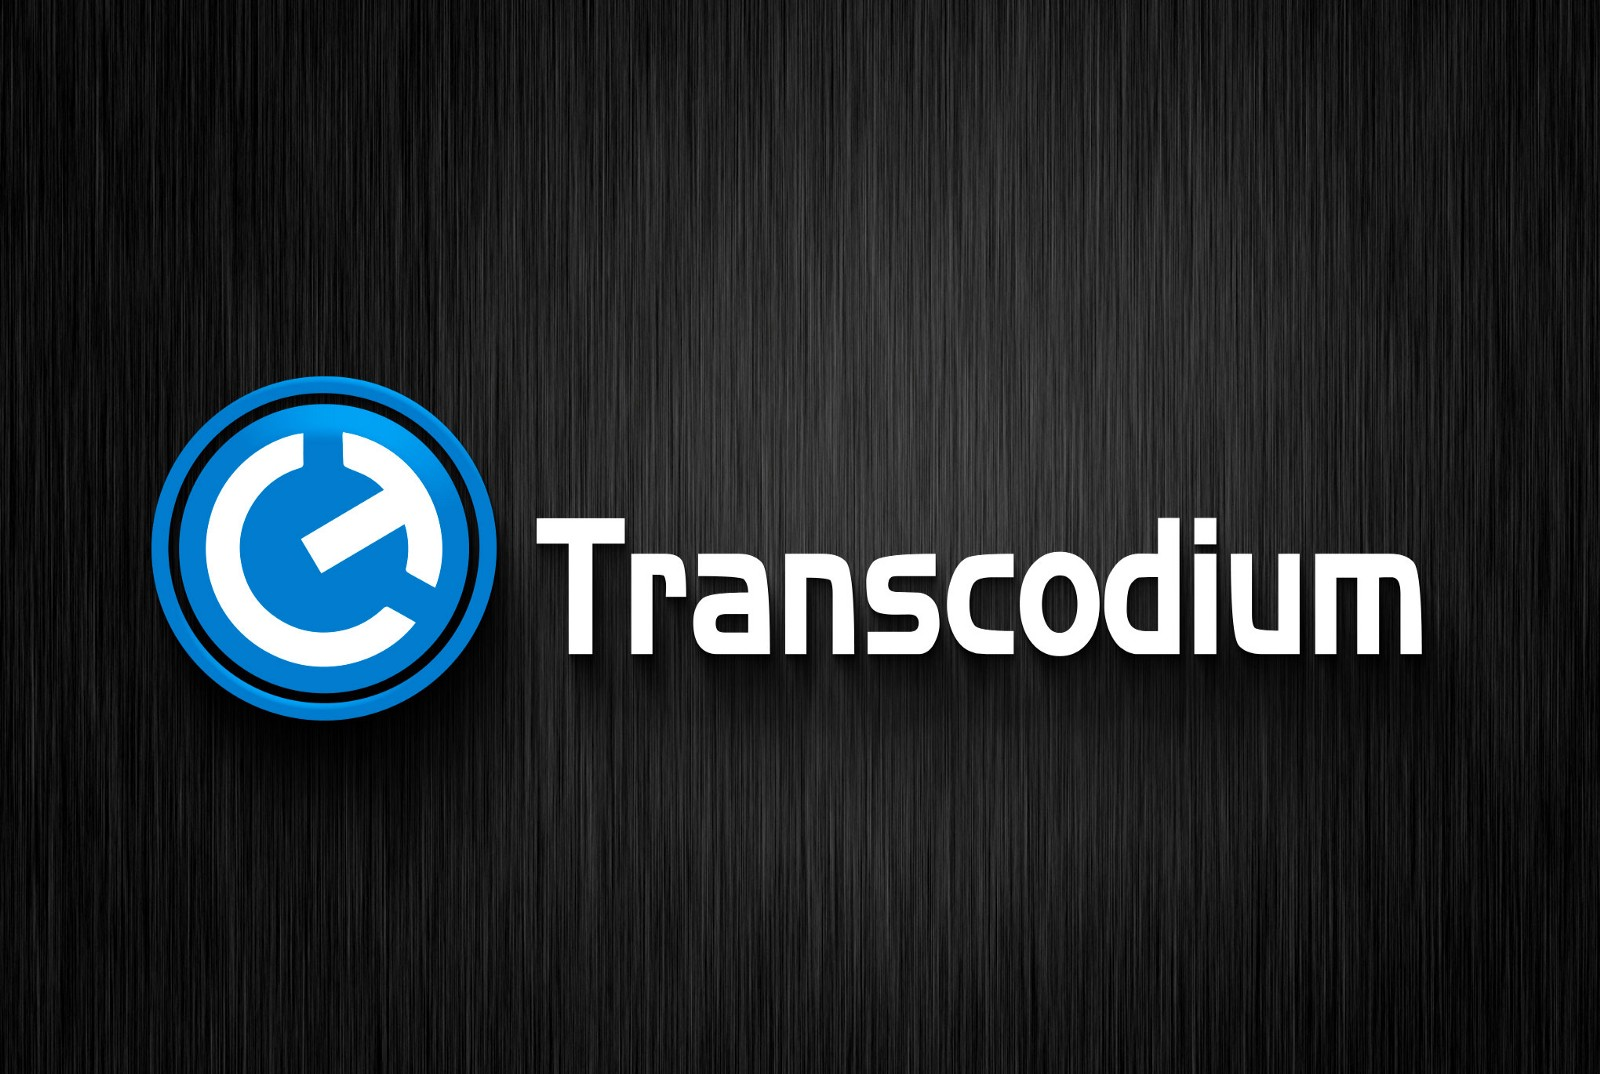 Why is Transcodium a game changer?